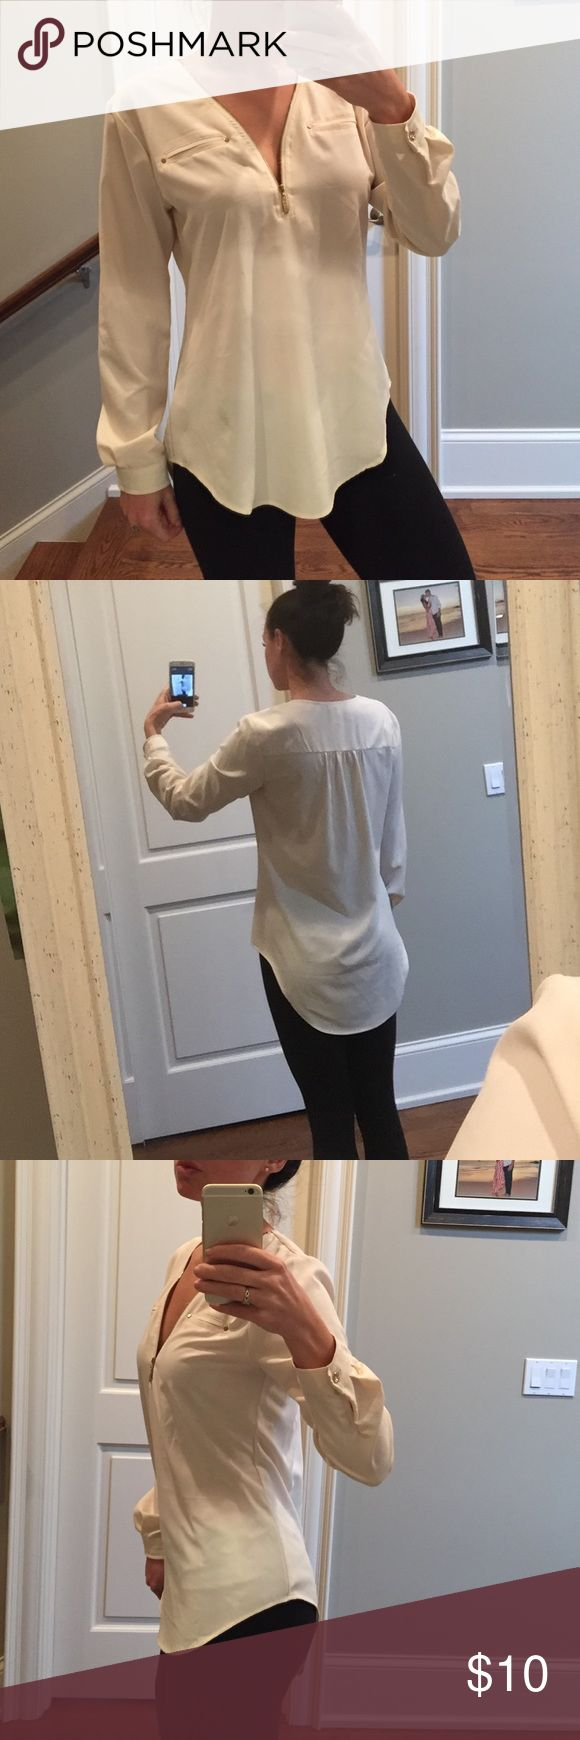 Cream long sleeve blouse Hot Miami styles! Long sleeve, zip up front blouse! Great for a In style business casual shirt! Longer in the back so great with leggings. Worn once! Tops Blouses